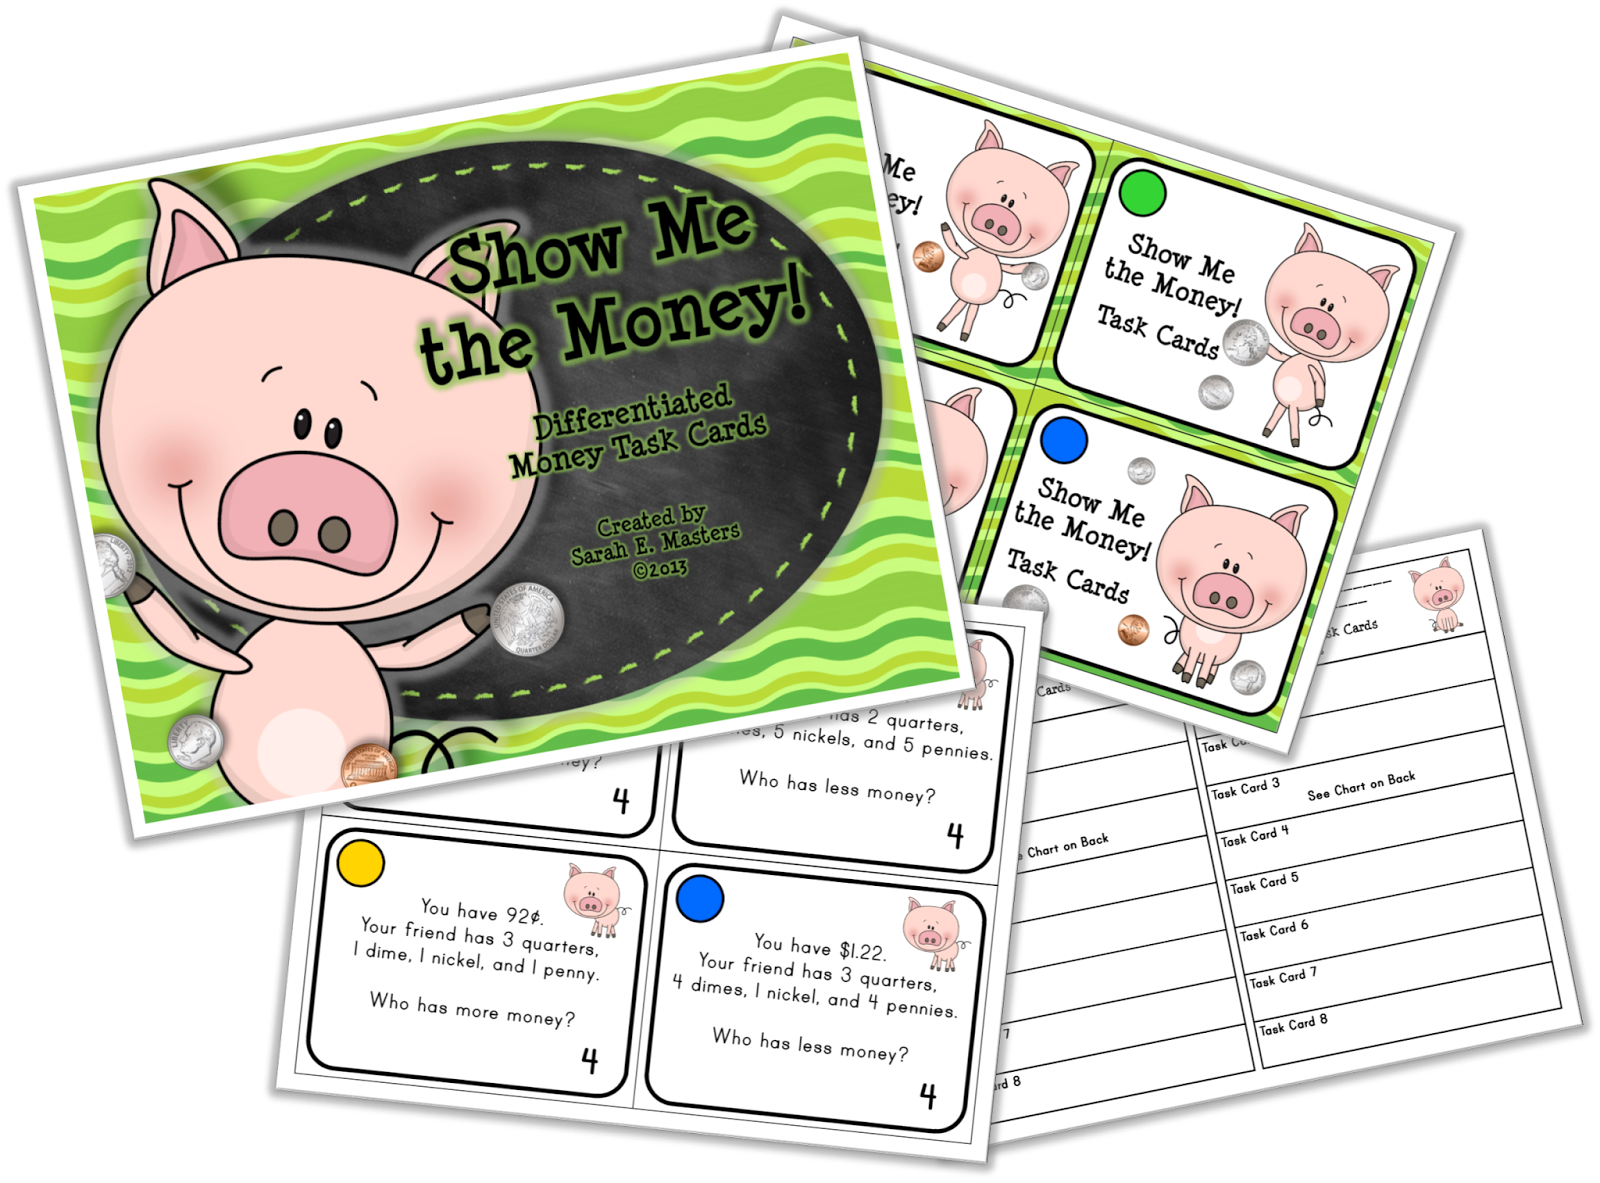 http://www.teacherspayteachers.com/Product/Money-Task-Cards-Show-Me-the-Money-Differentiated-Math-Center-Cards-522227